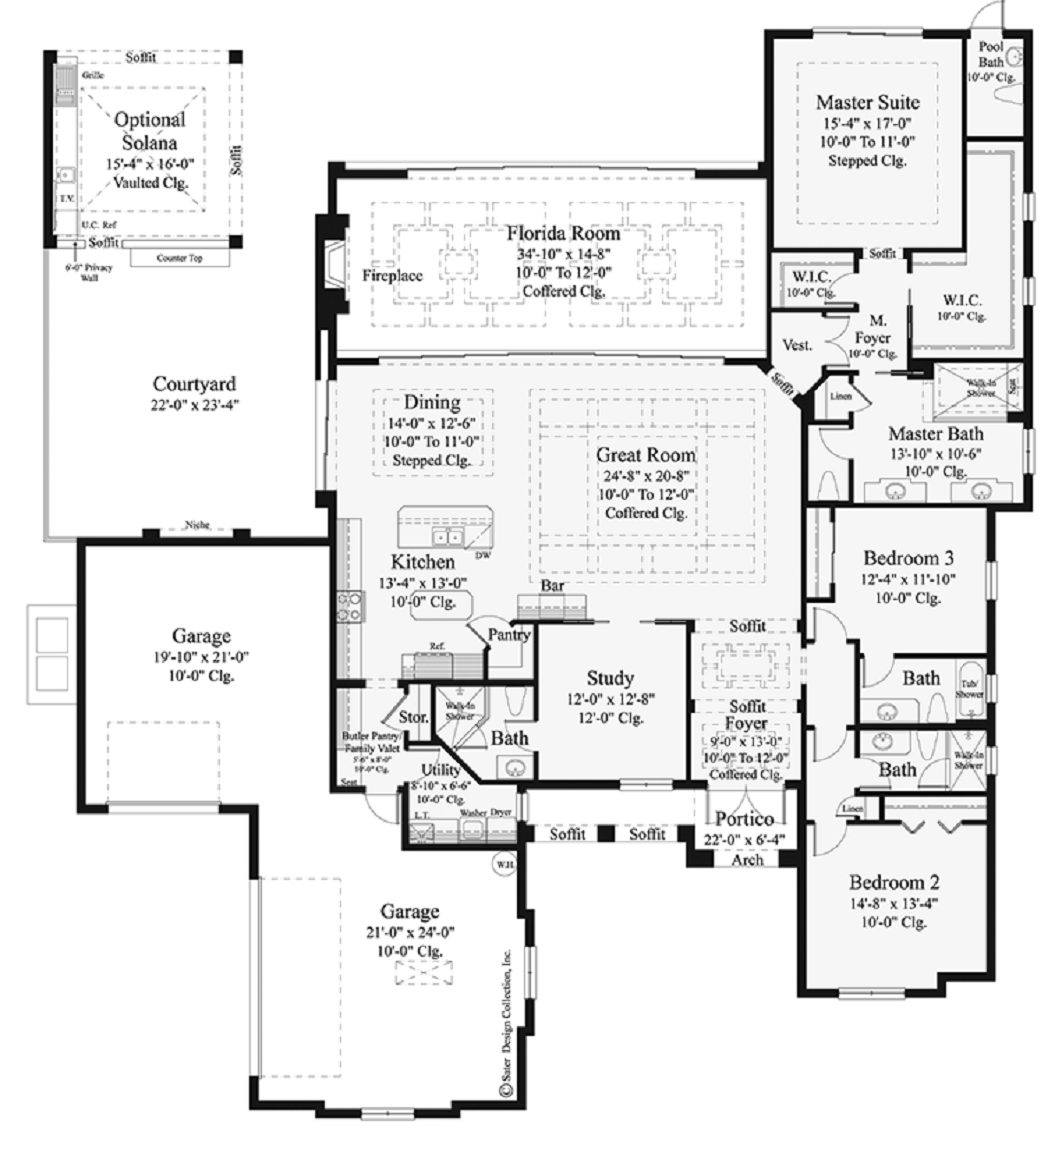 Slab home plans house plan 2017 for Slab home floor plans